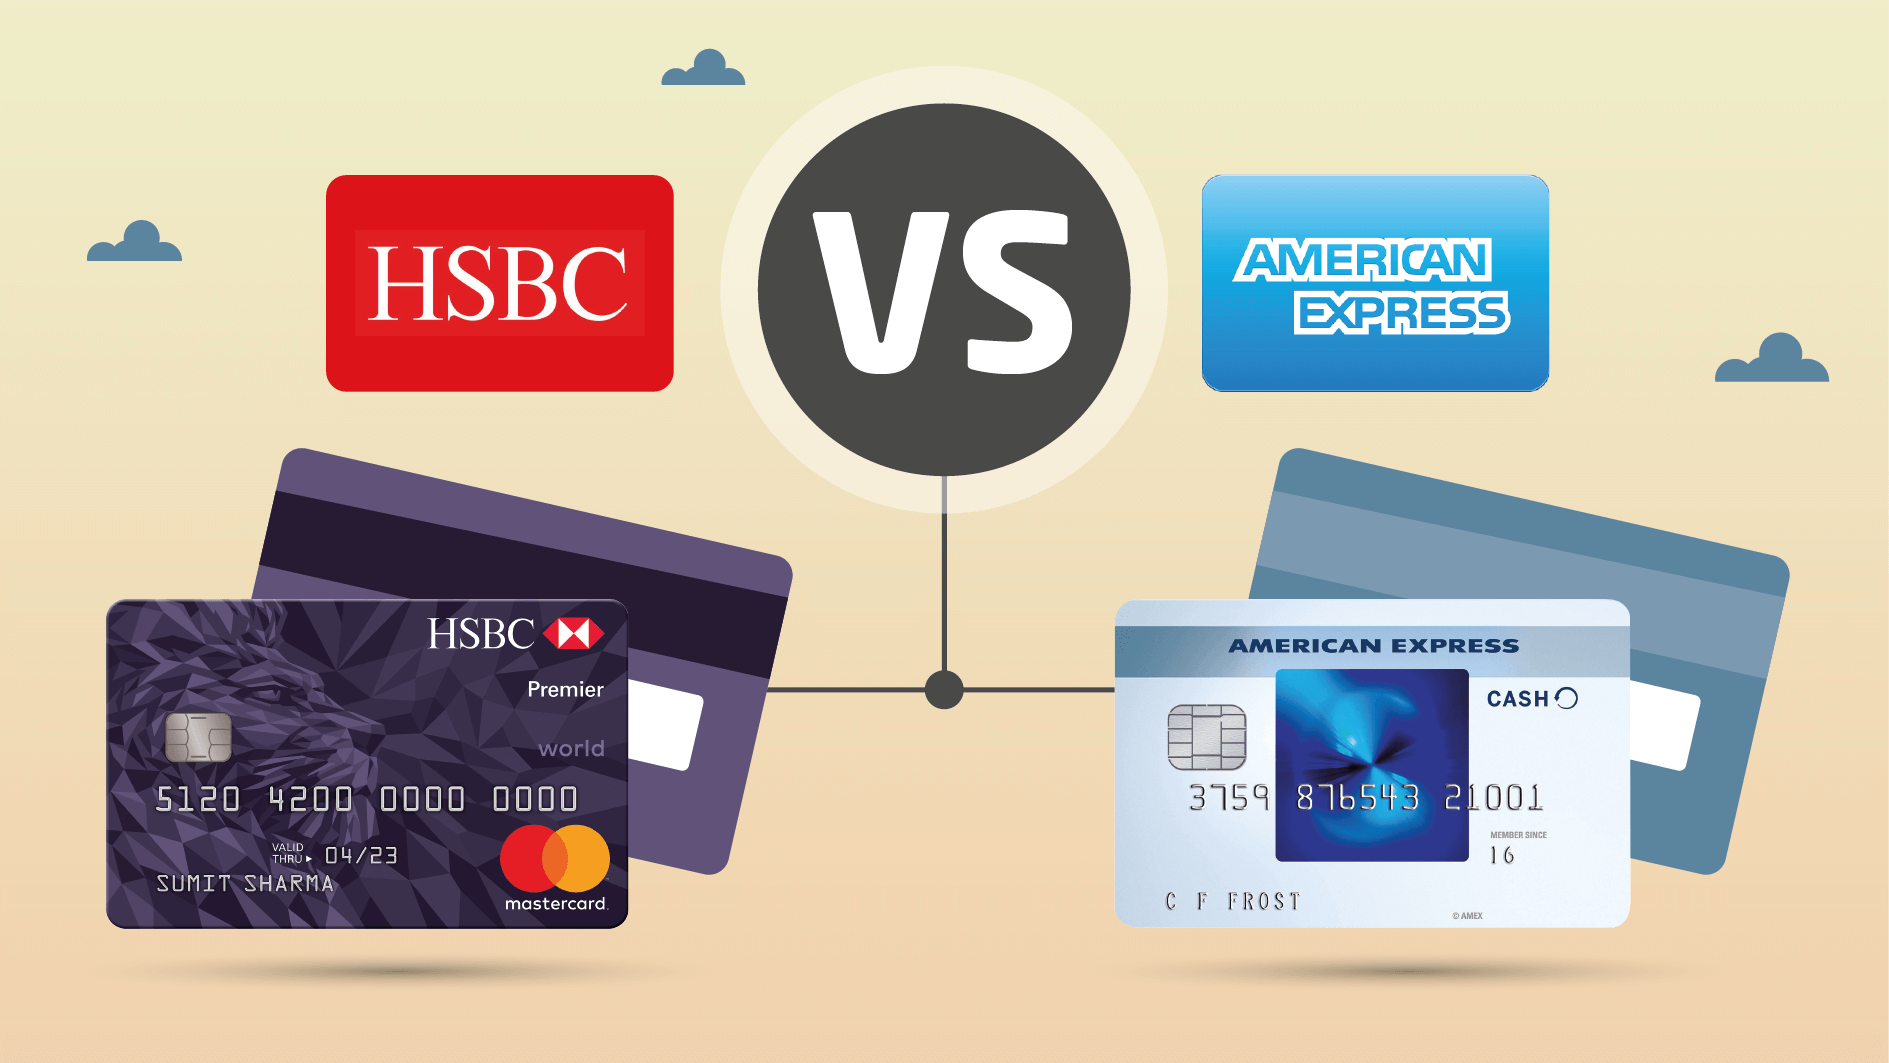 Capital One Auto Loan Payment >> HSBC Platinum vs. Amex Blue Cash Everyday - CreditLoan.com®